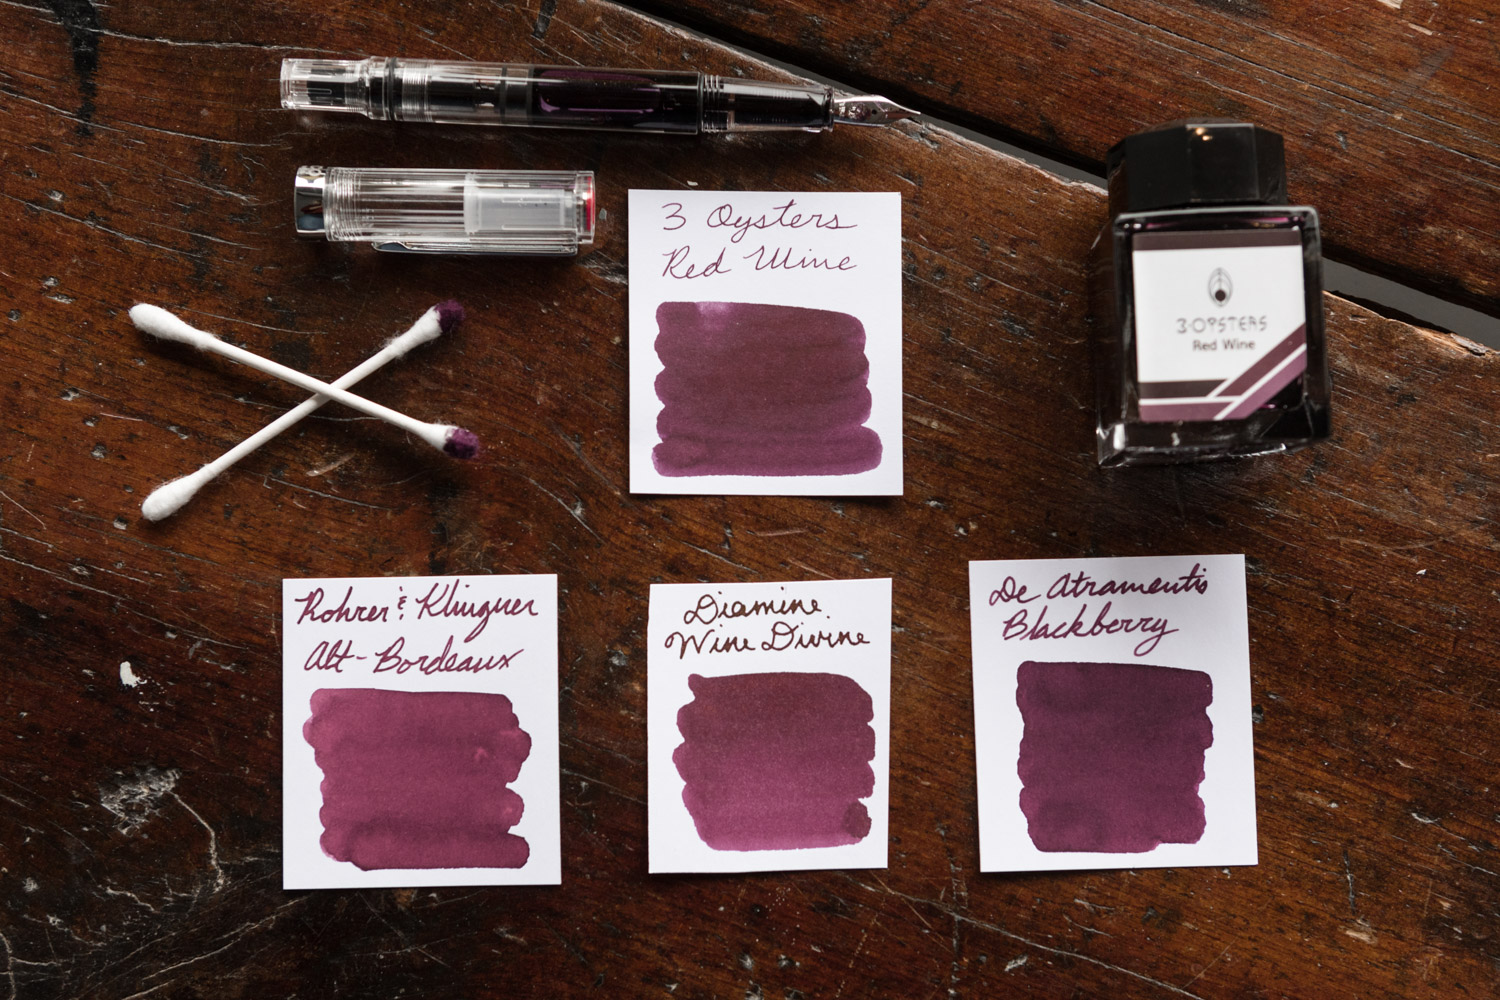 A layout of burgundy ink swabs comparable to 3 Oysters Red Wine ink.